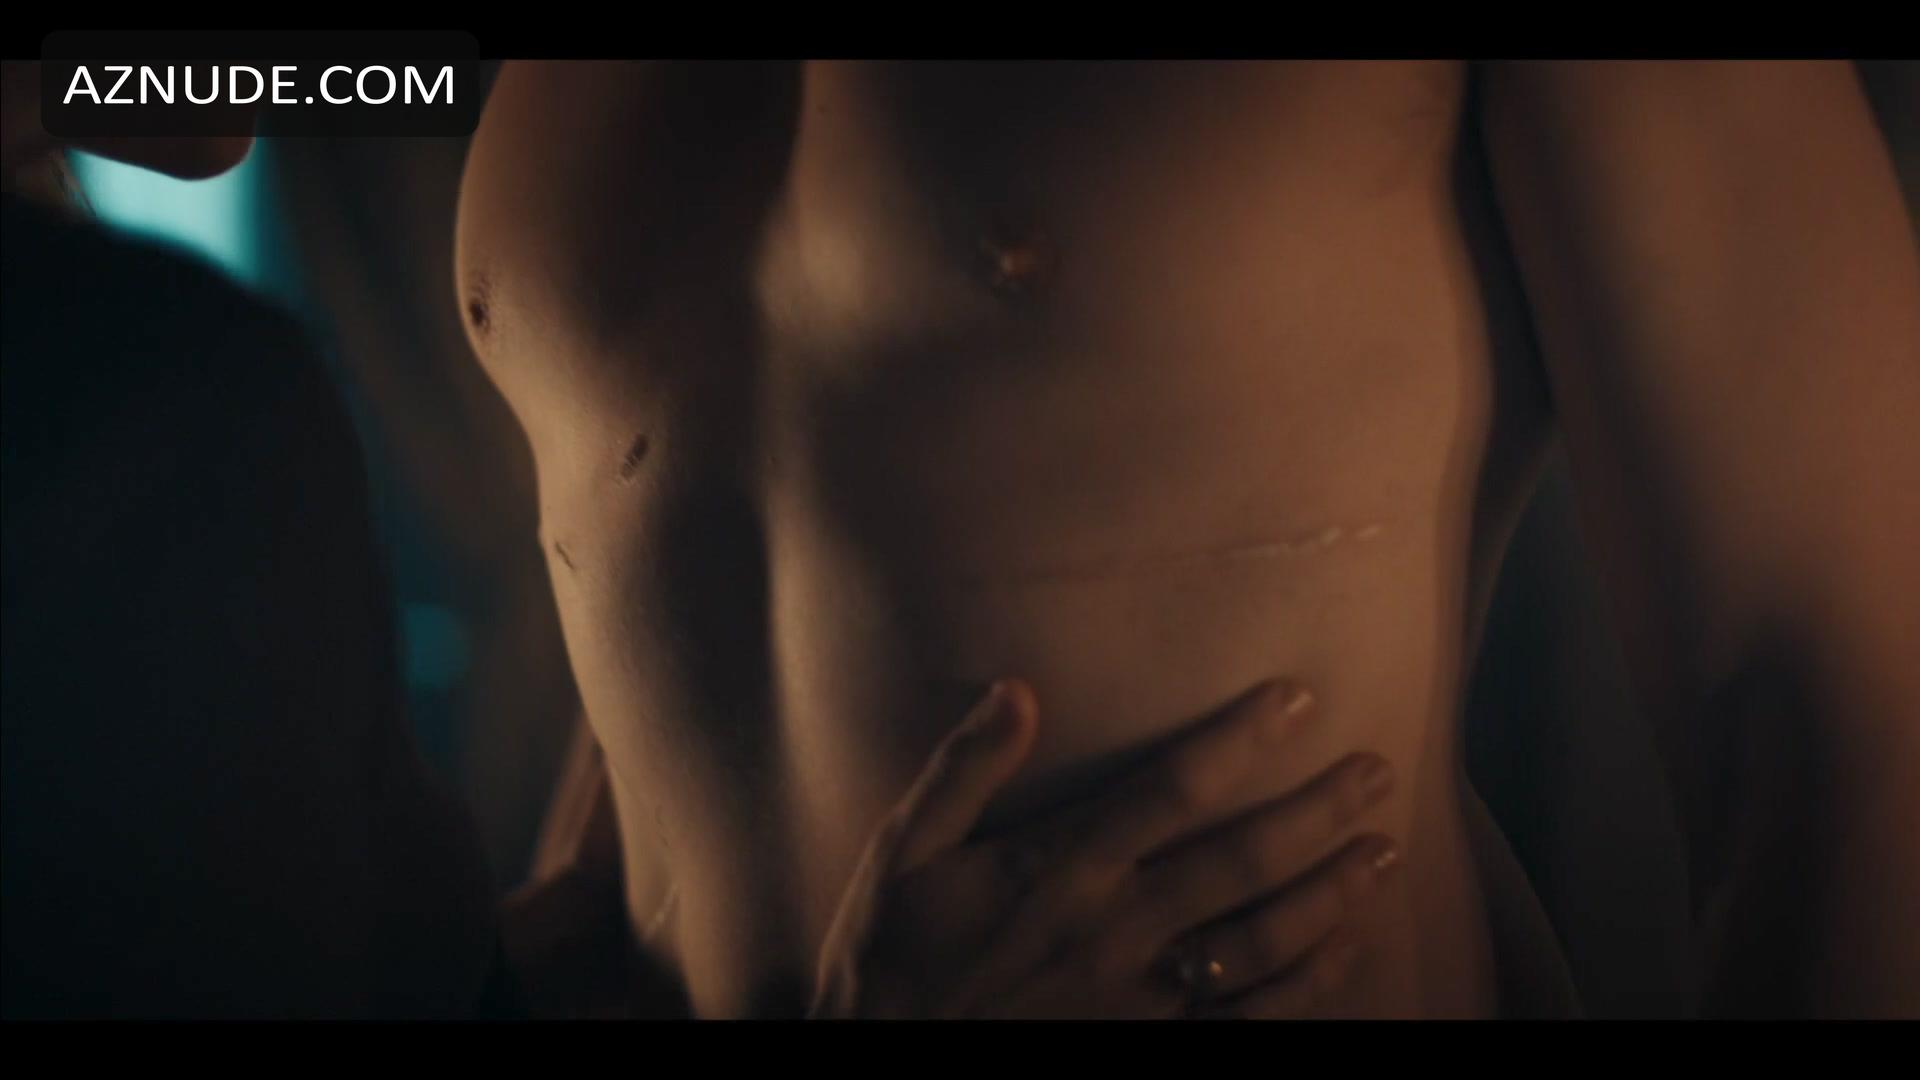 With Matthew goode naked body